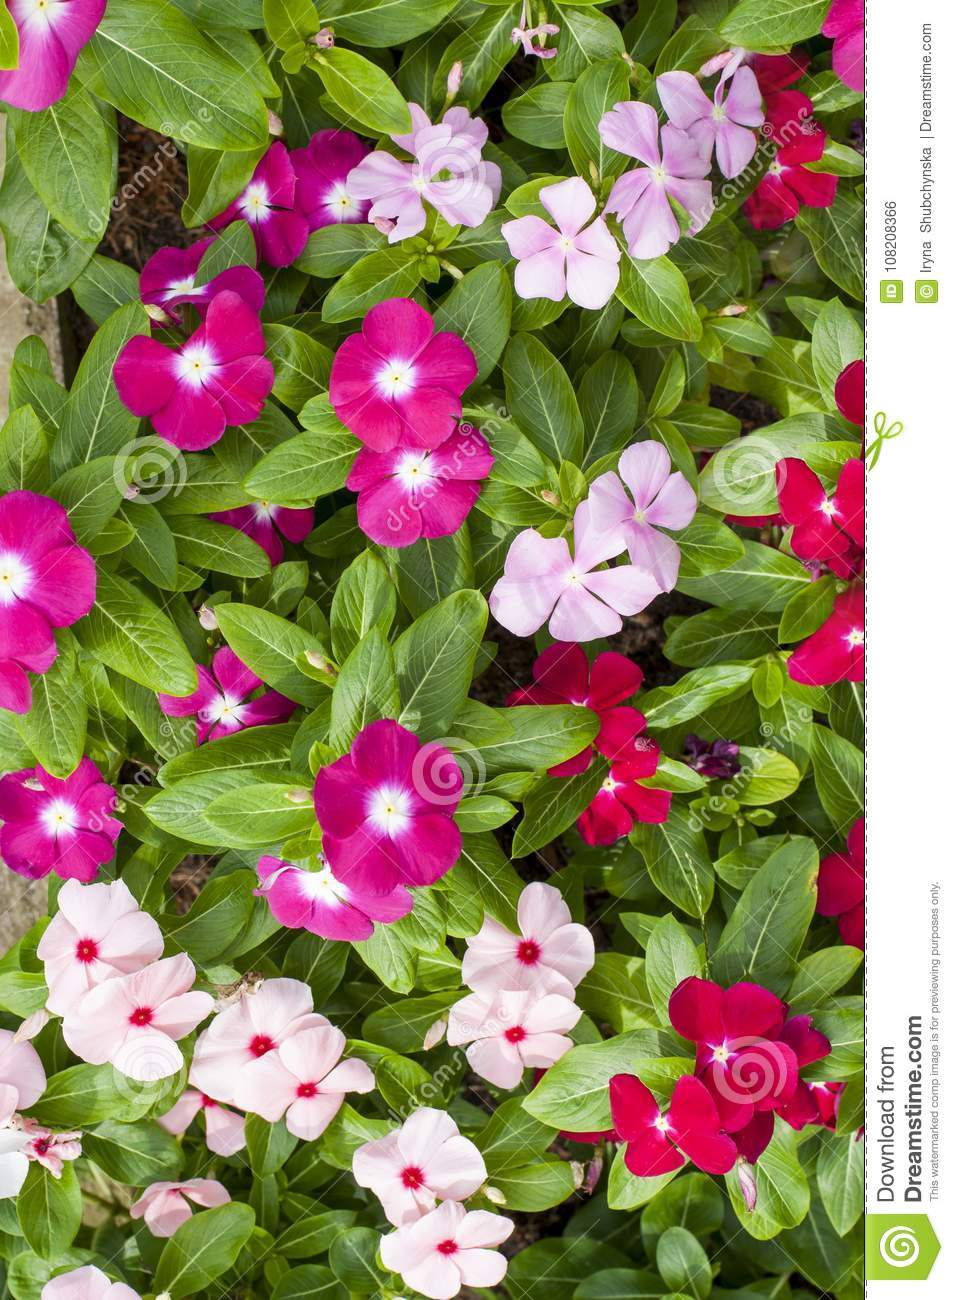 Fresh Green Leaves Of A Plant With White Pink And Red Flowers Stock